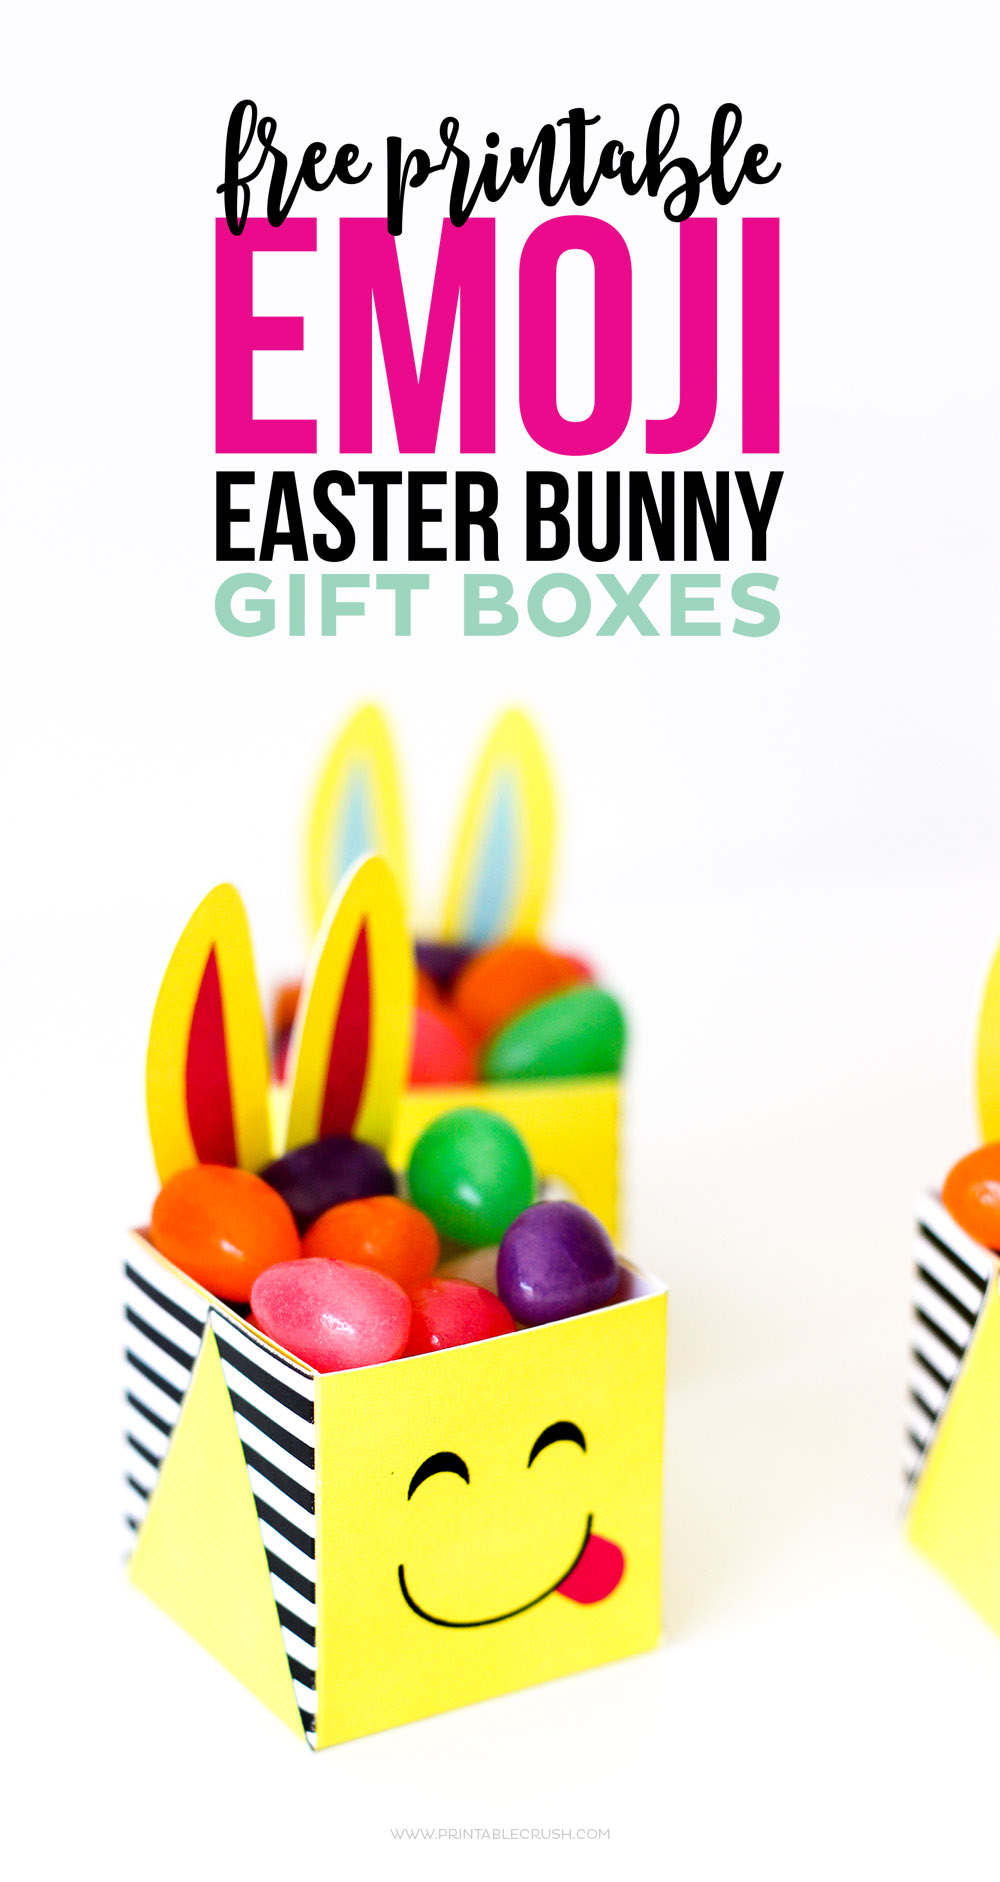 Free printable emoji easter bunny boxes printable crush these free printable emoji easter bunny boxes are the cutest little boxes youve ever negle Gallery